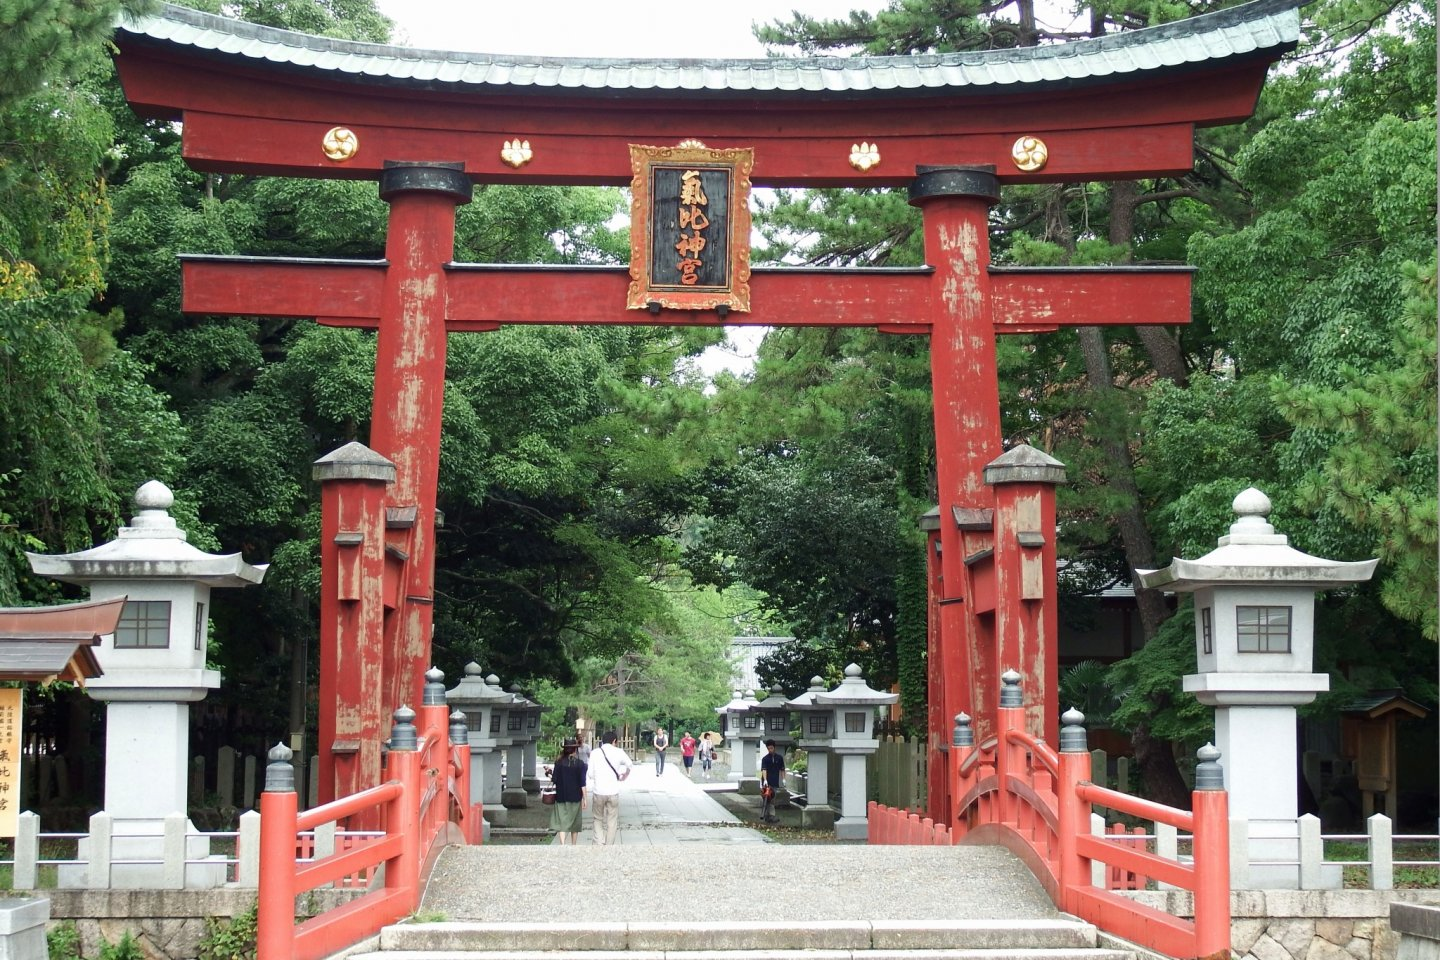 Main torii gate of Kehi Jingu Shrine. This is the third tallest wooden torii in Japan and an important cultural property